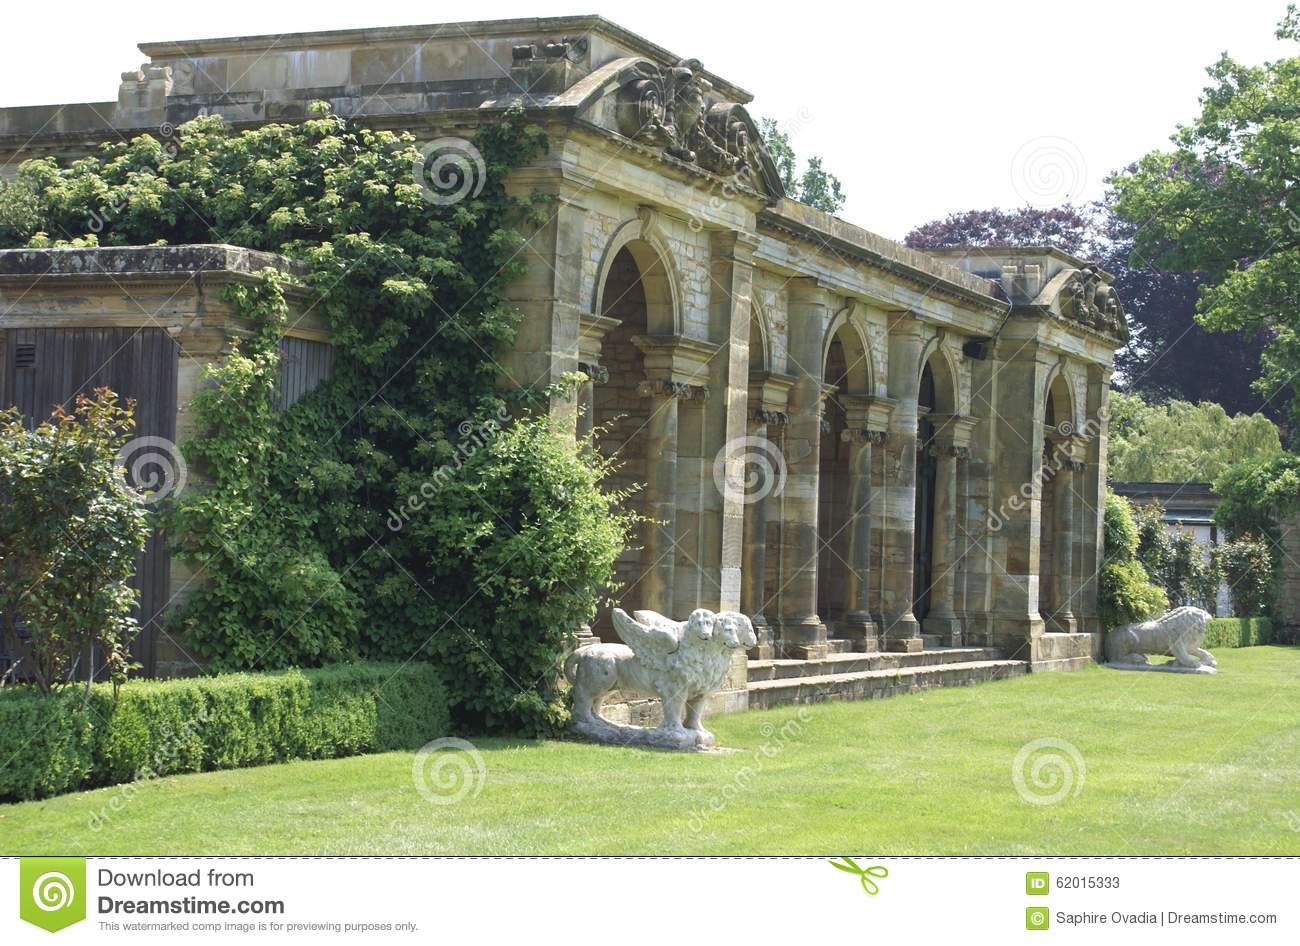 Colonnade and lion statues at Hever castle Italian garden in England